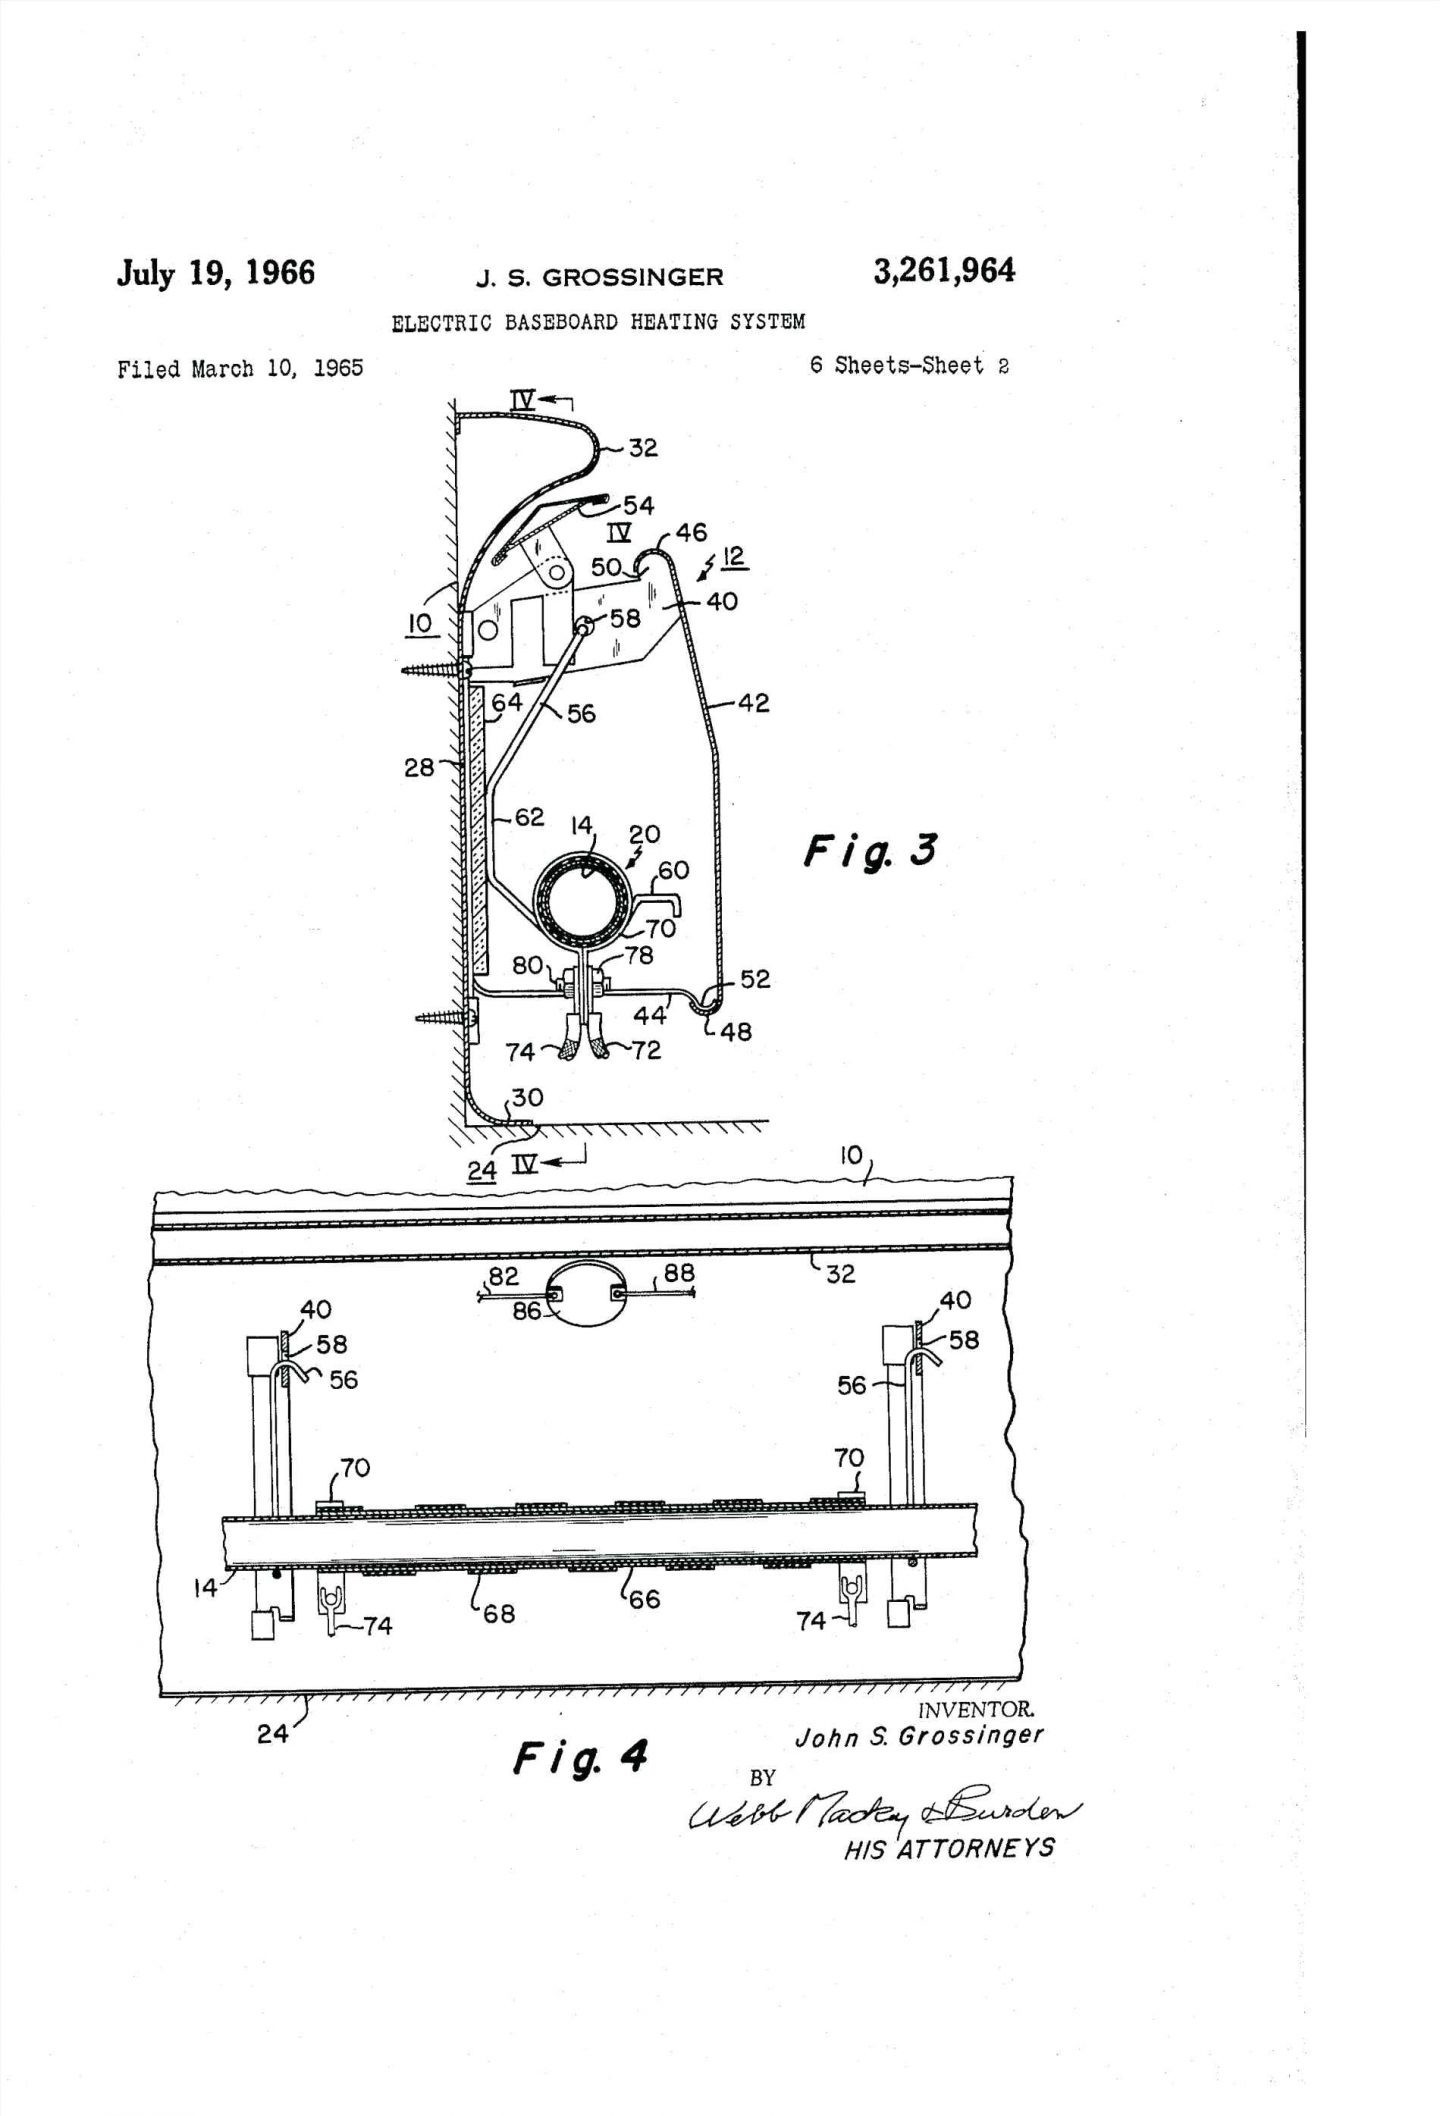 Wiring Diagram for Baseboard Heater New 220v Baseboard Heater Wiring Diagram